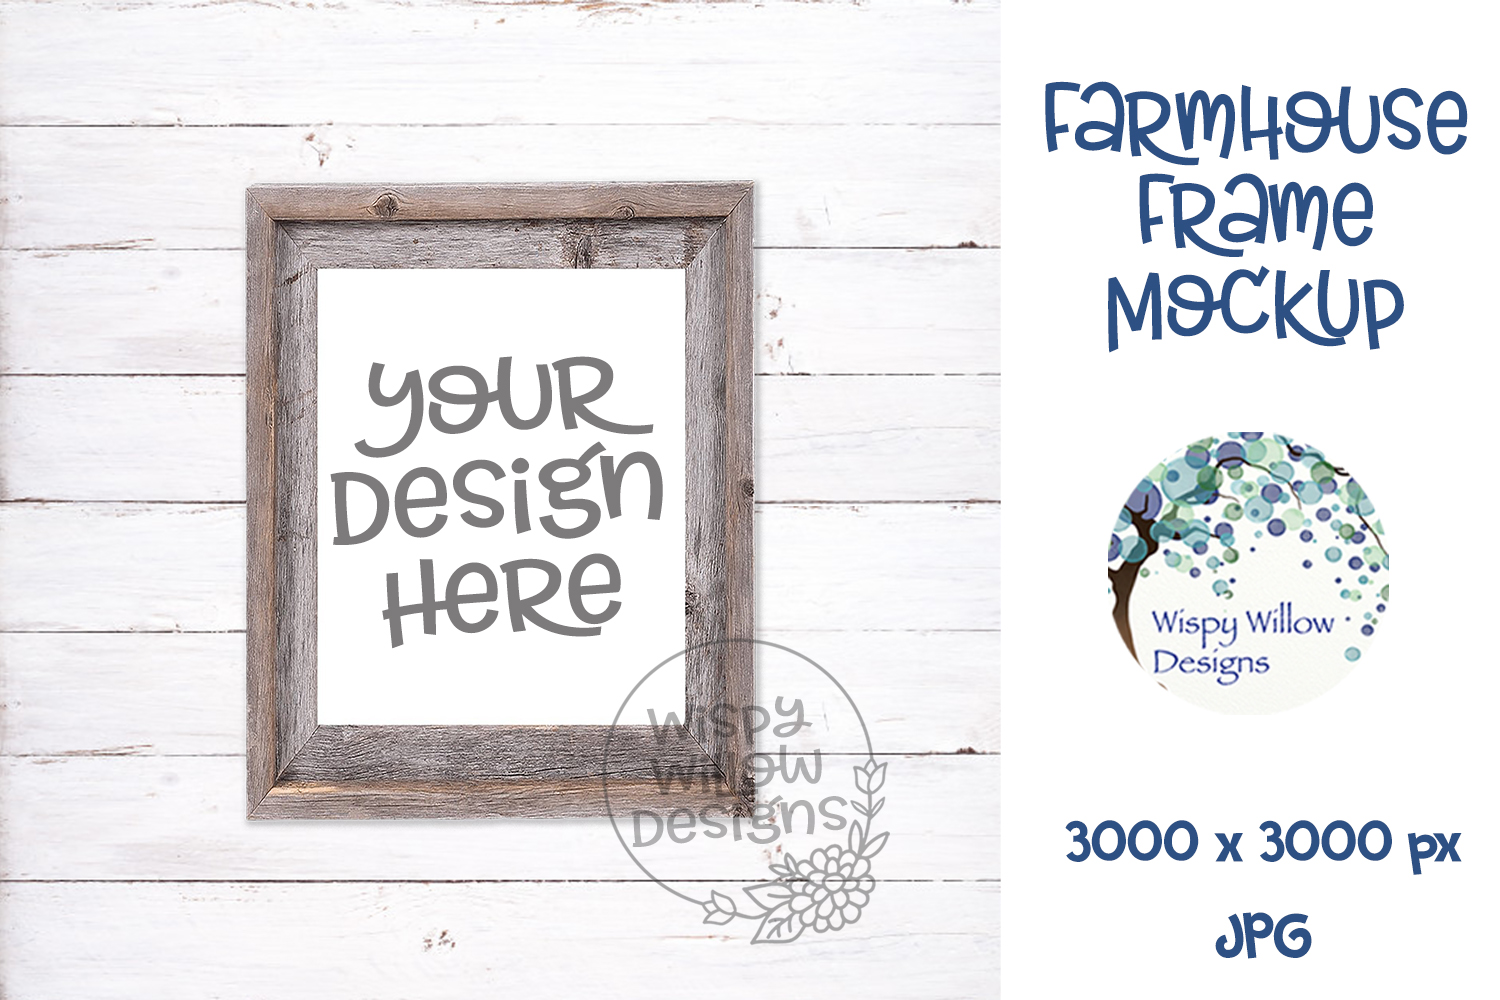 8x10 Vertical Farmhouse Photo Frame Mockup example image 1